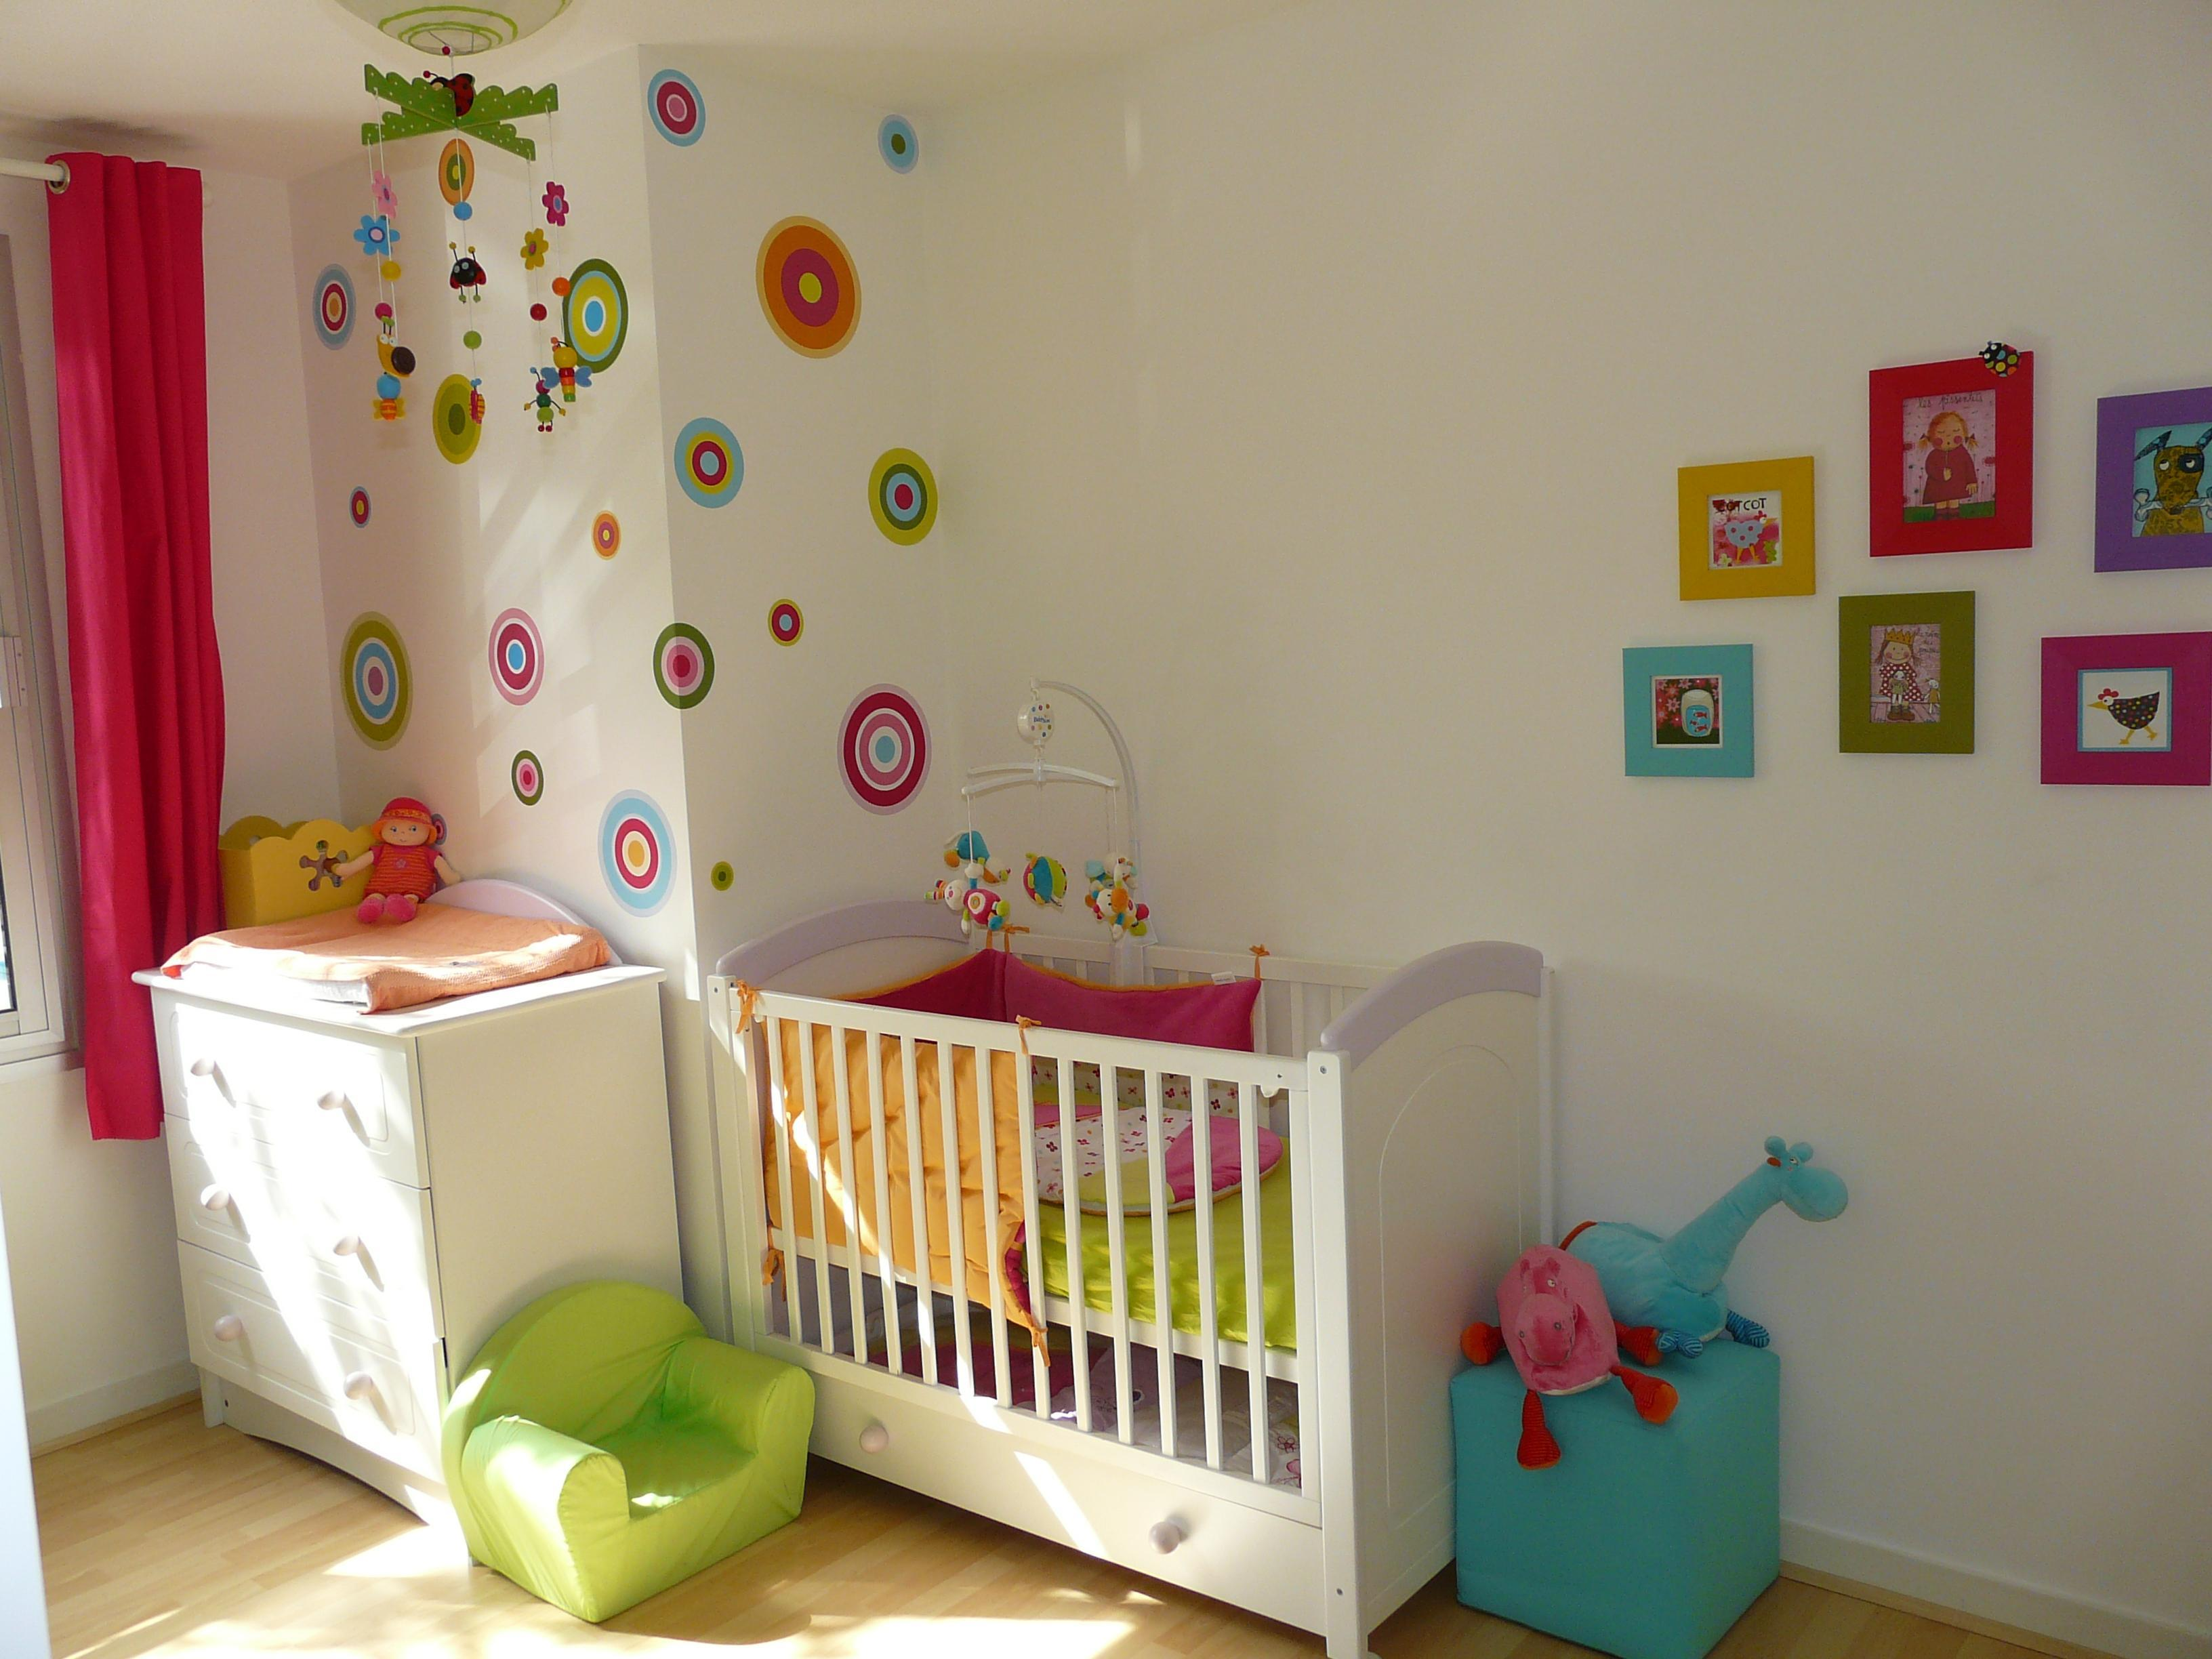 Decoration de chambre enfant pi ti li for Decoration chambre bebe fait main